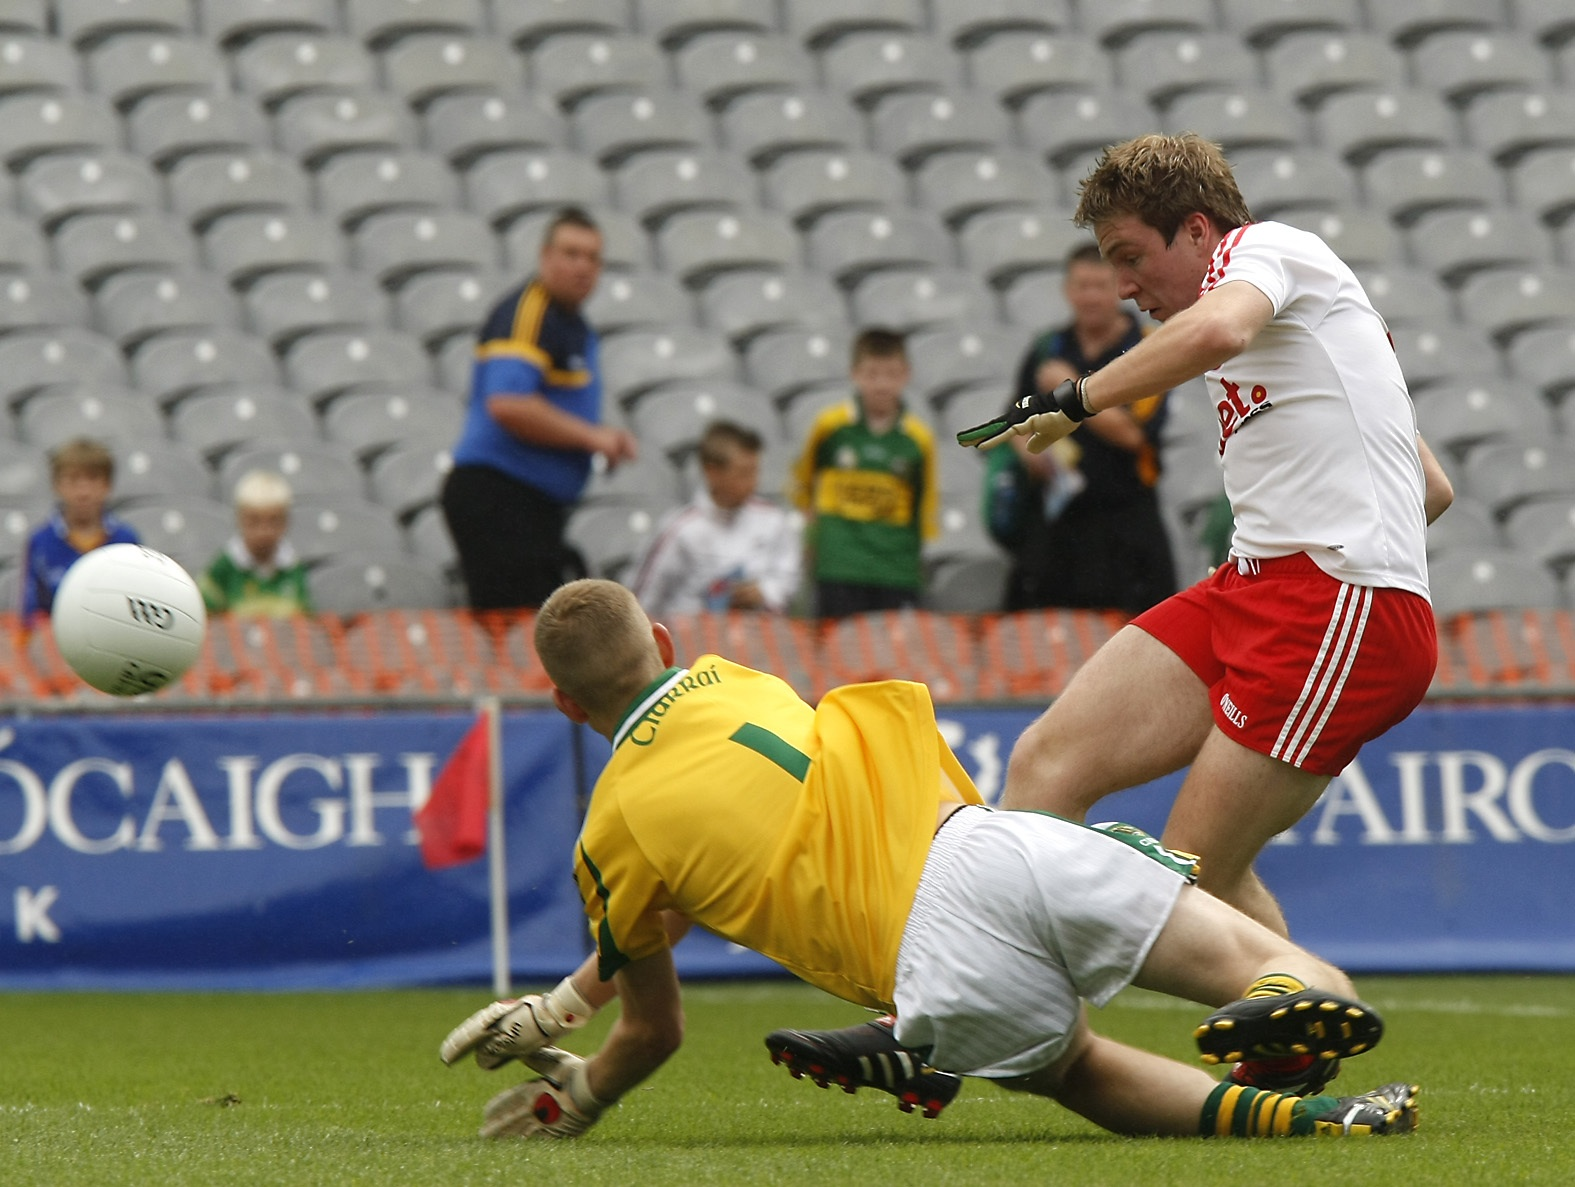 Minors March Into All Ireland Semi Final